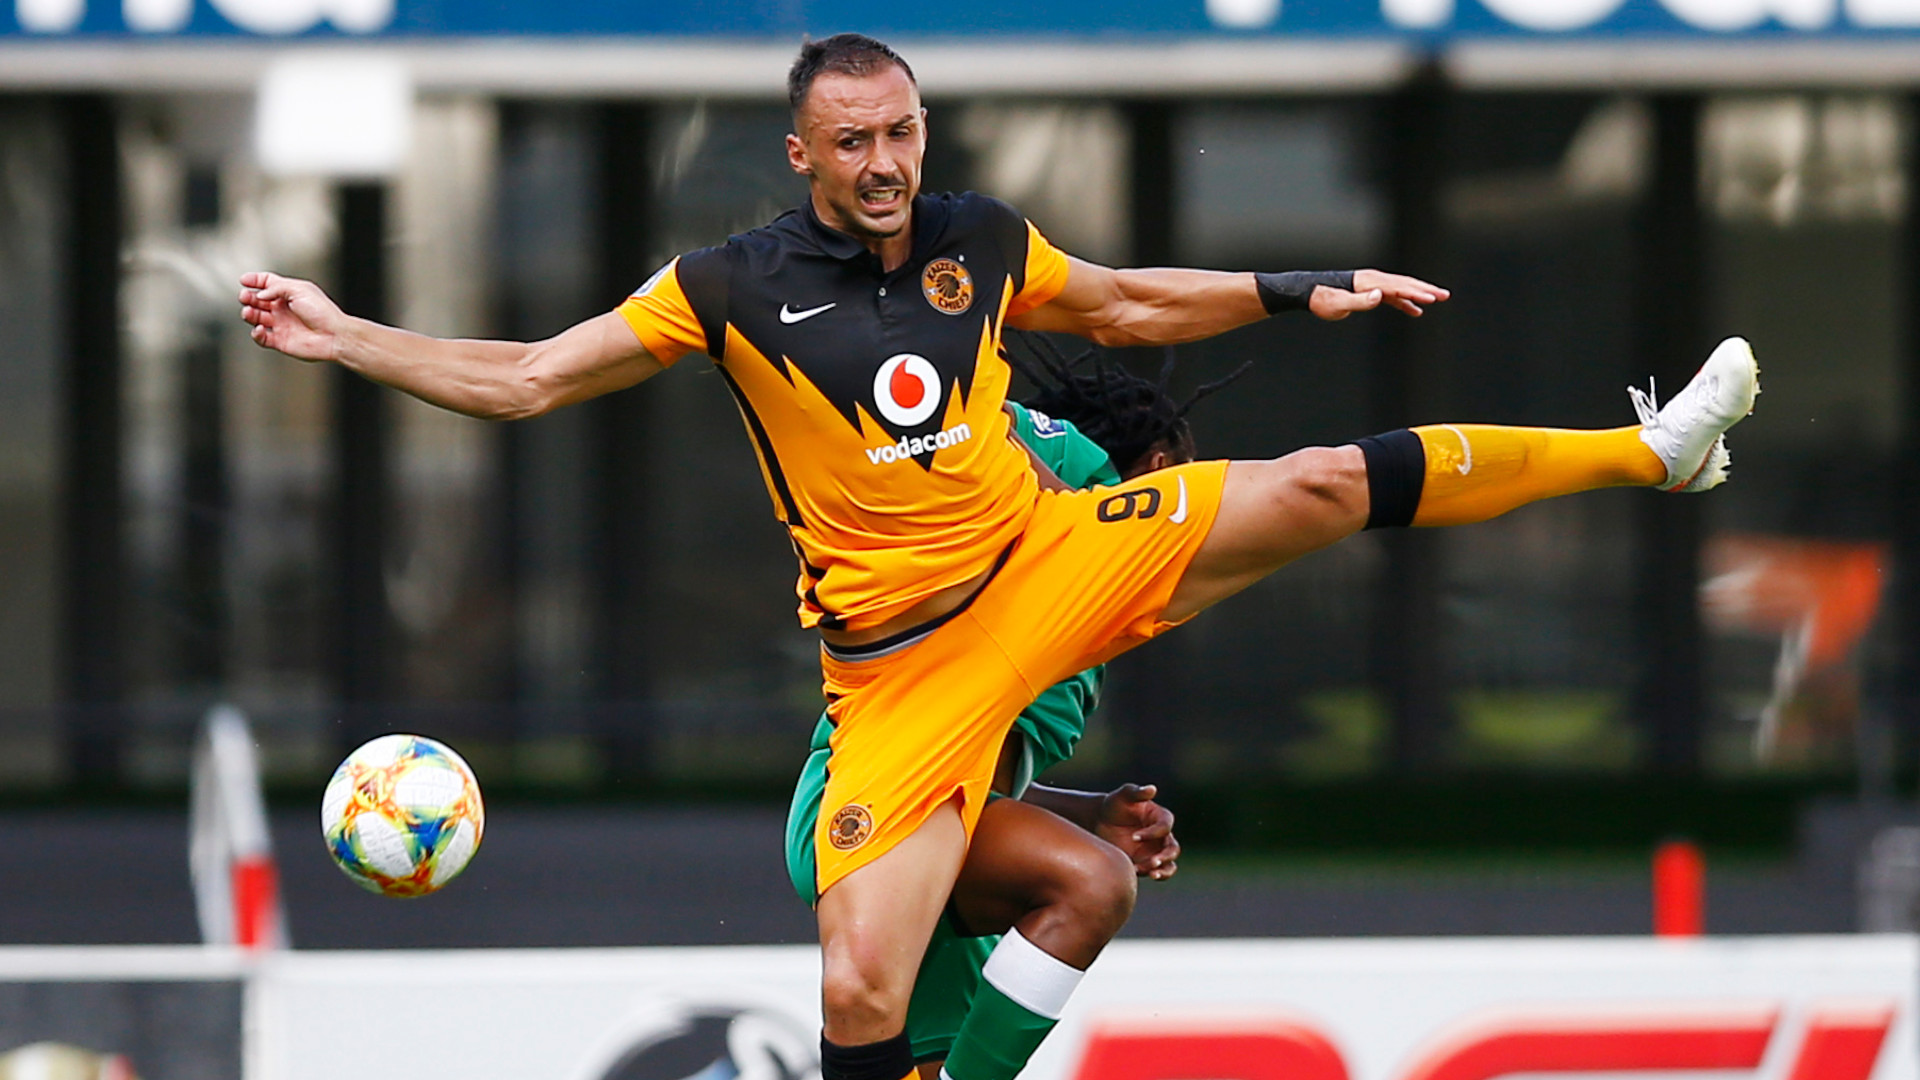 Hunt: Nurkovic is what Kaizer Chiefs' future needs